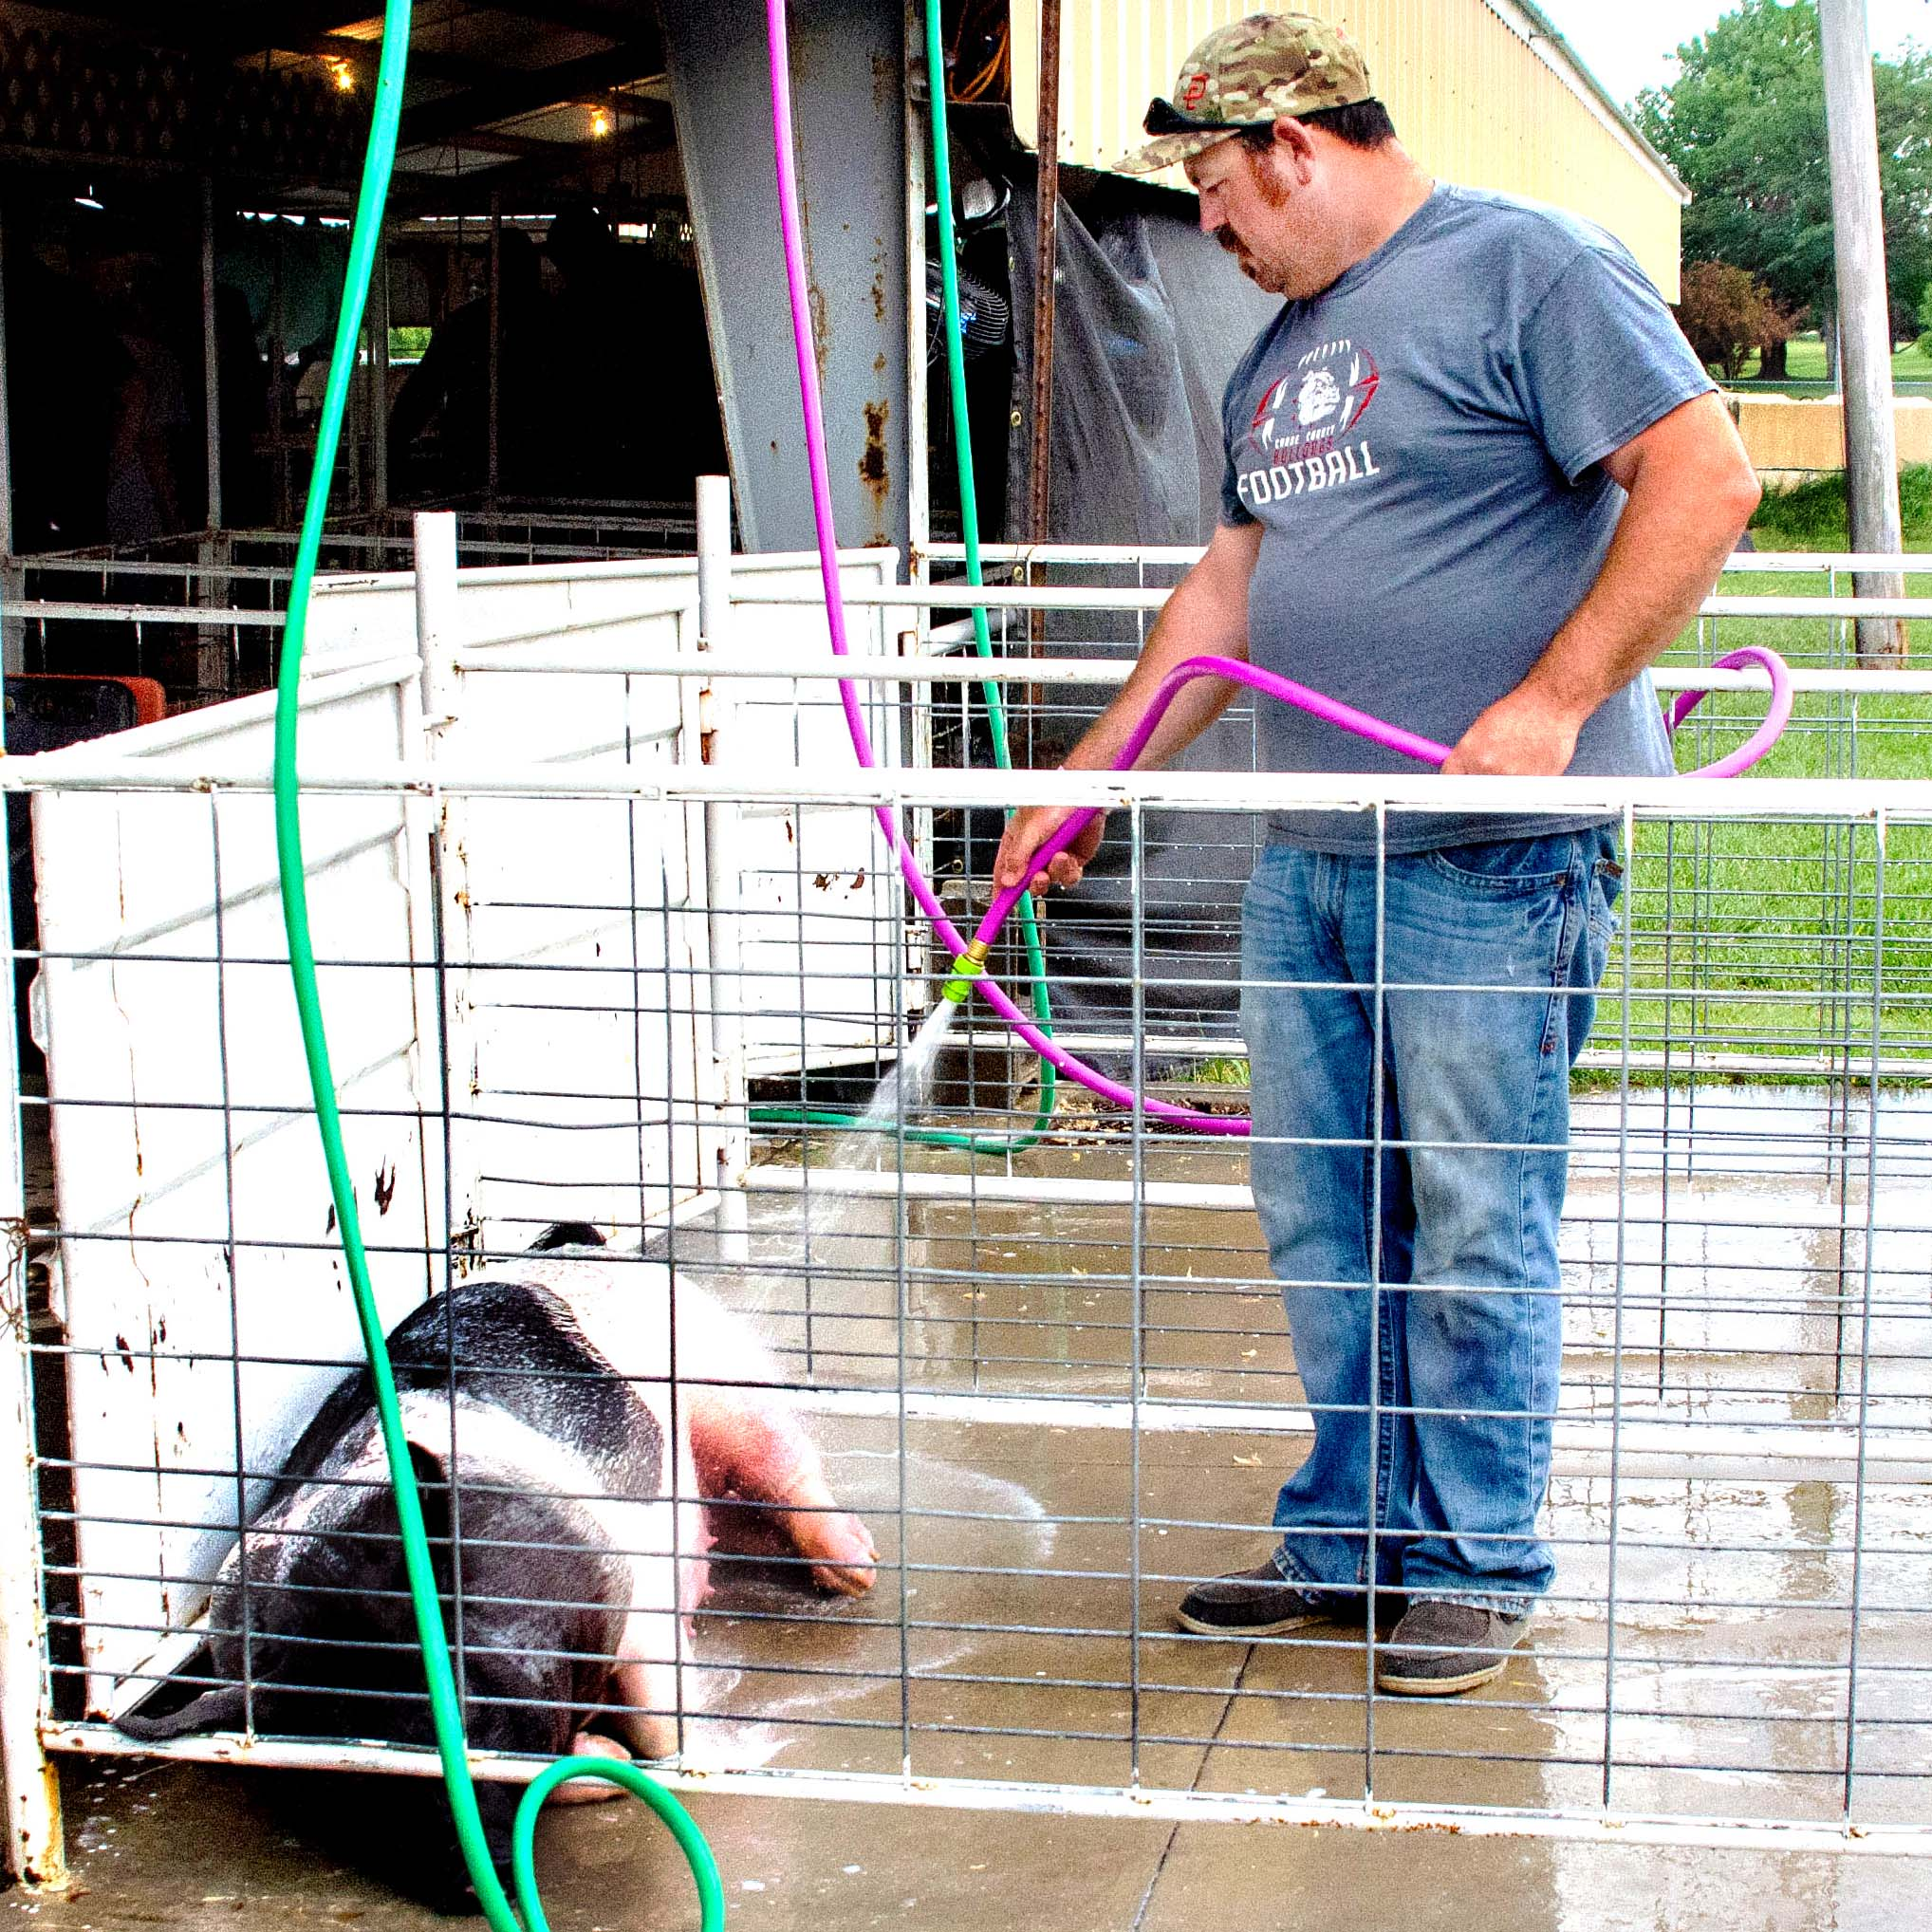 Kollin Klenda, 2, son of Leann and Phillip Klenda, dressed up in cowboy garb for the co-ed ranch rodeo on Tuesday night at the Marion County fairgrounds.